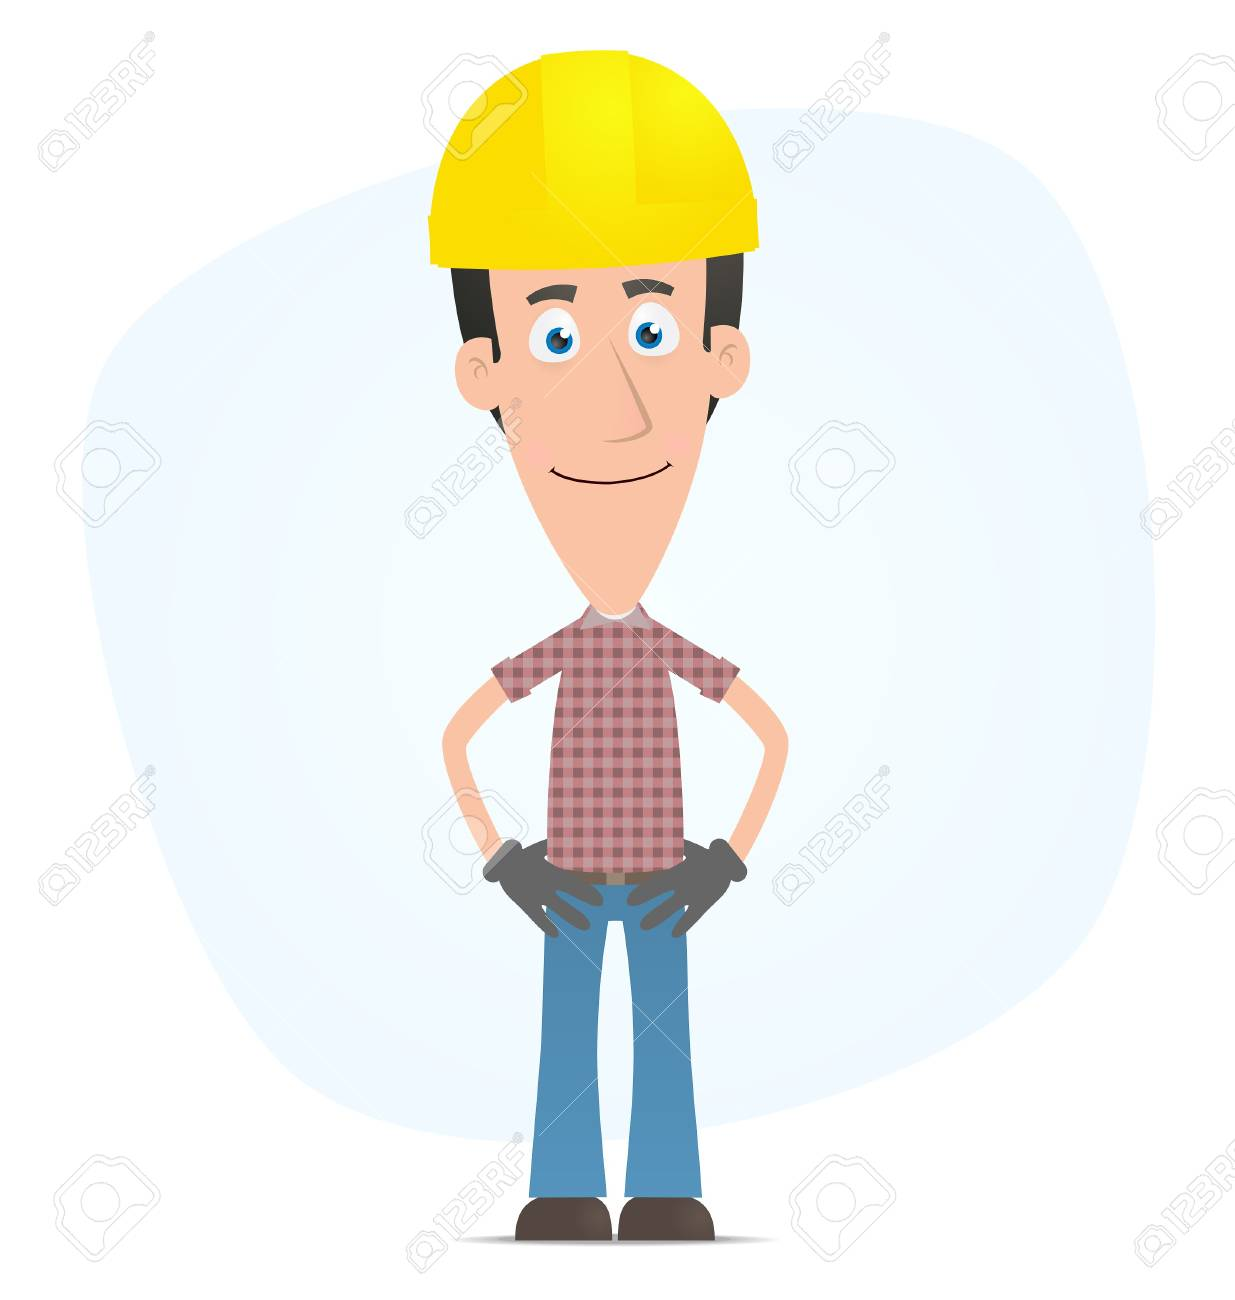 Illustration of a cartoon cute character for use in presentations, etc. Stock Vector - 7278066